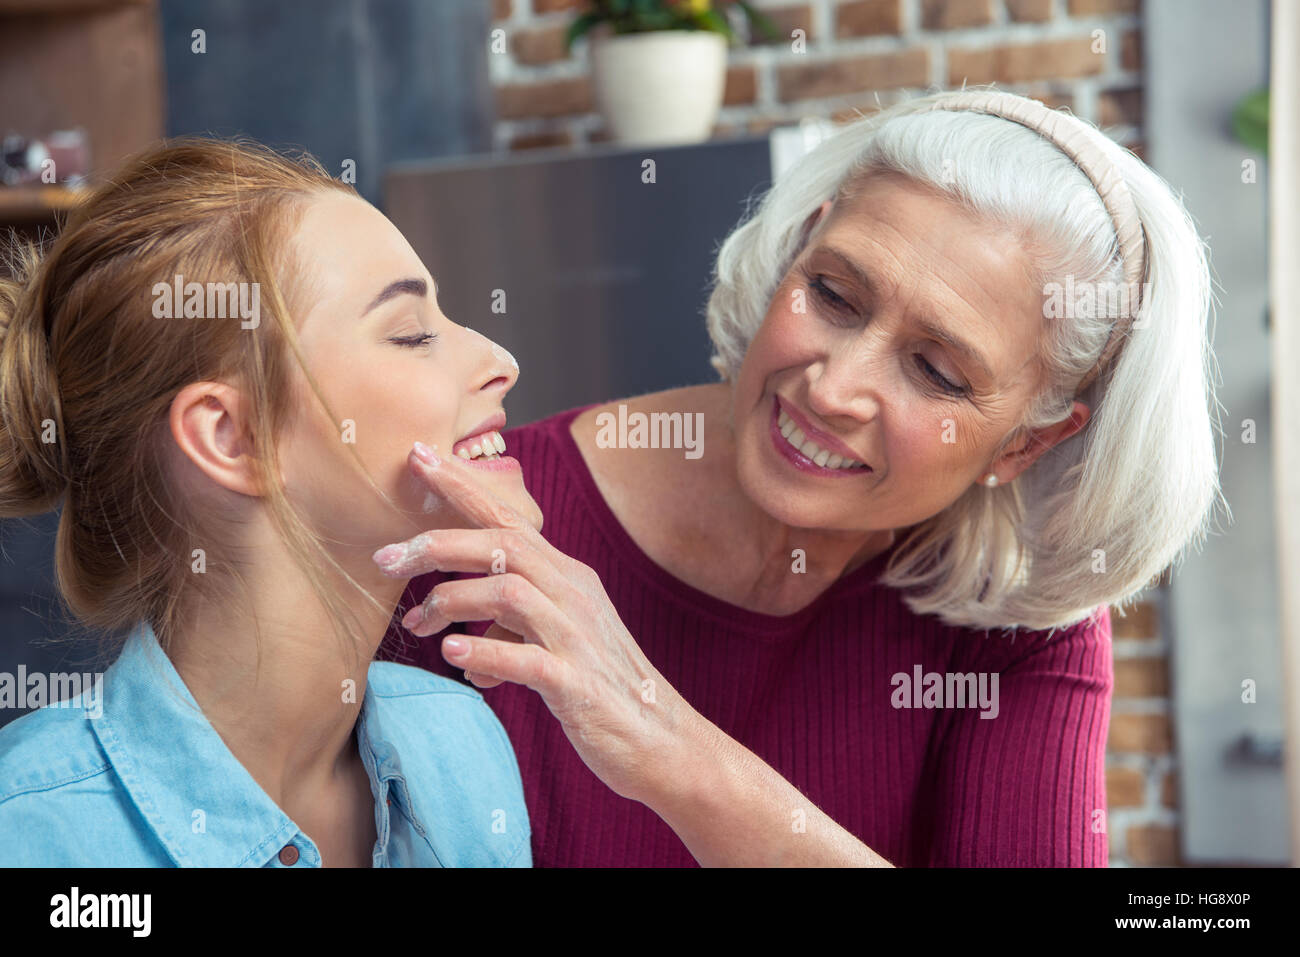 Happy grandmother removing flour from the cheek of her granddaughter - Stock Image